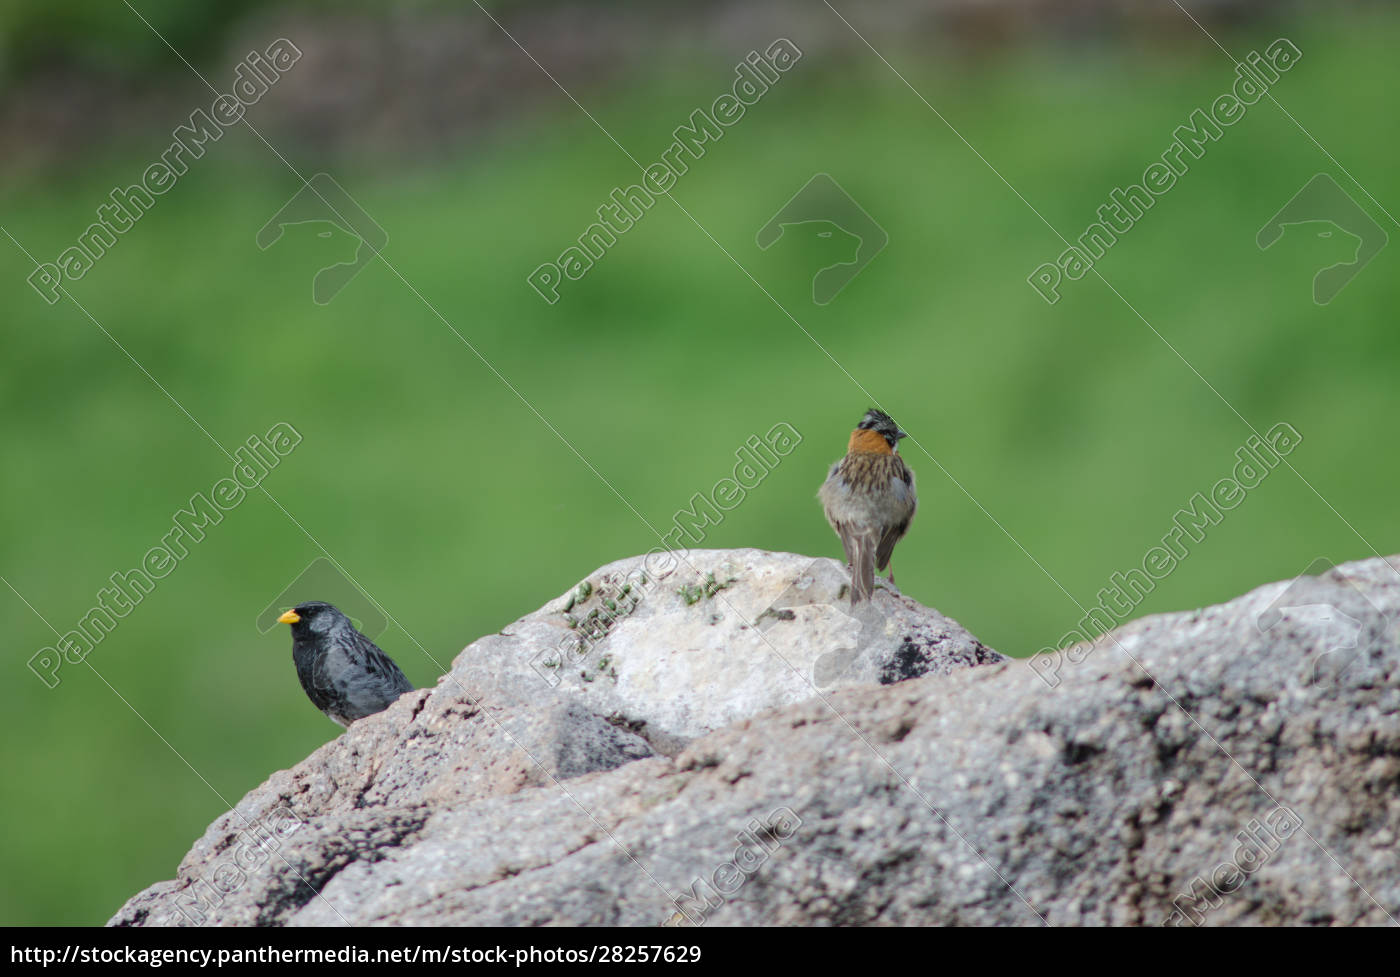 band-tailed, sierra, finch, and, rufous-collared, sparrow - 28257629